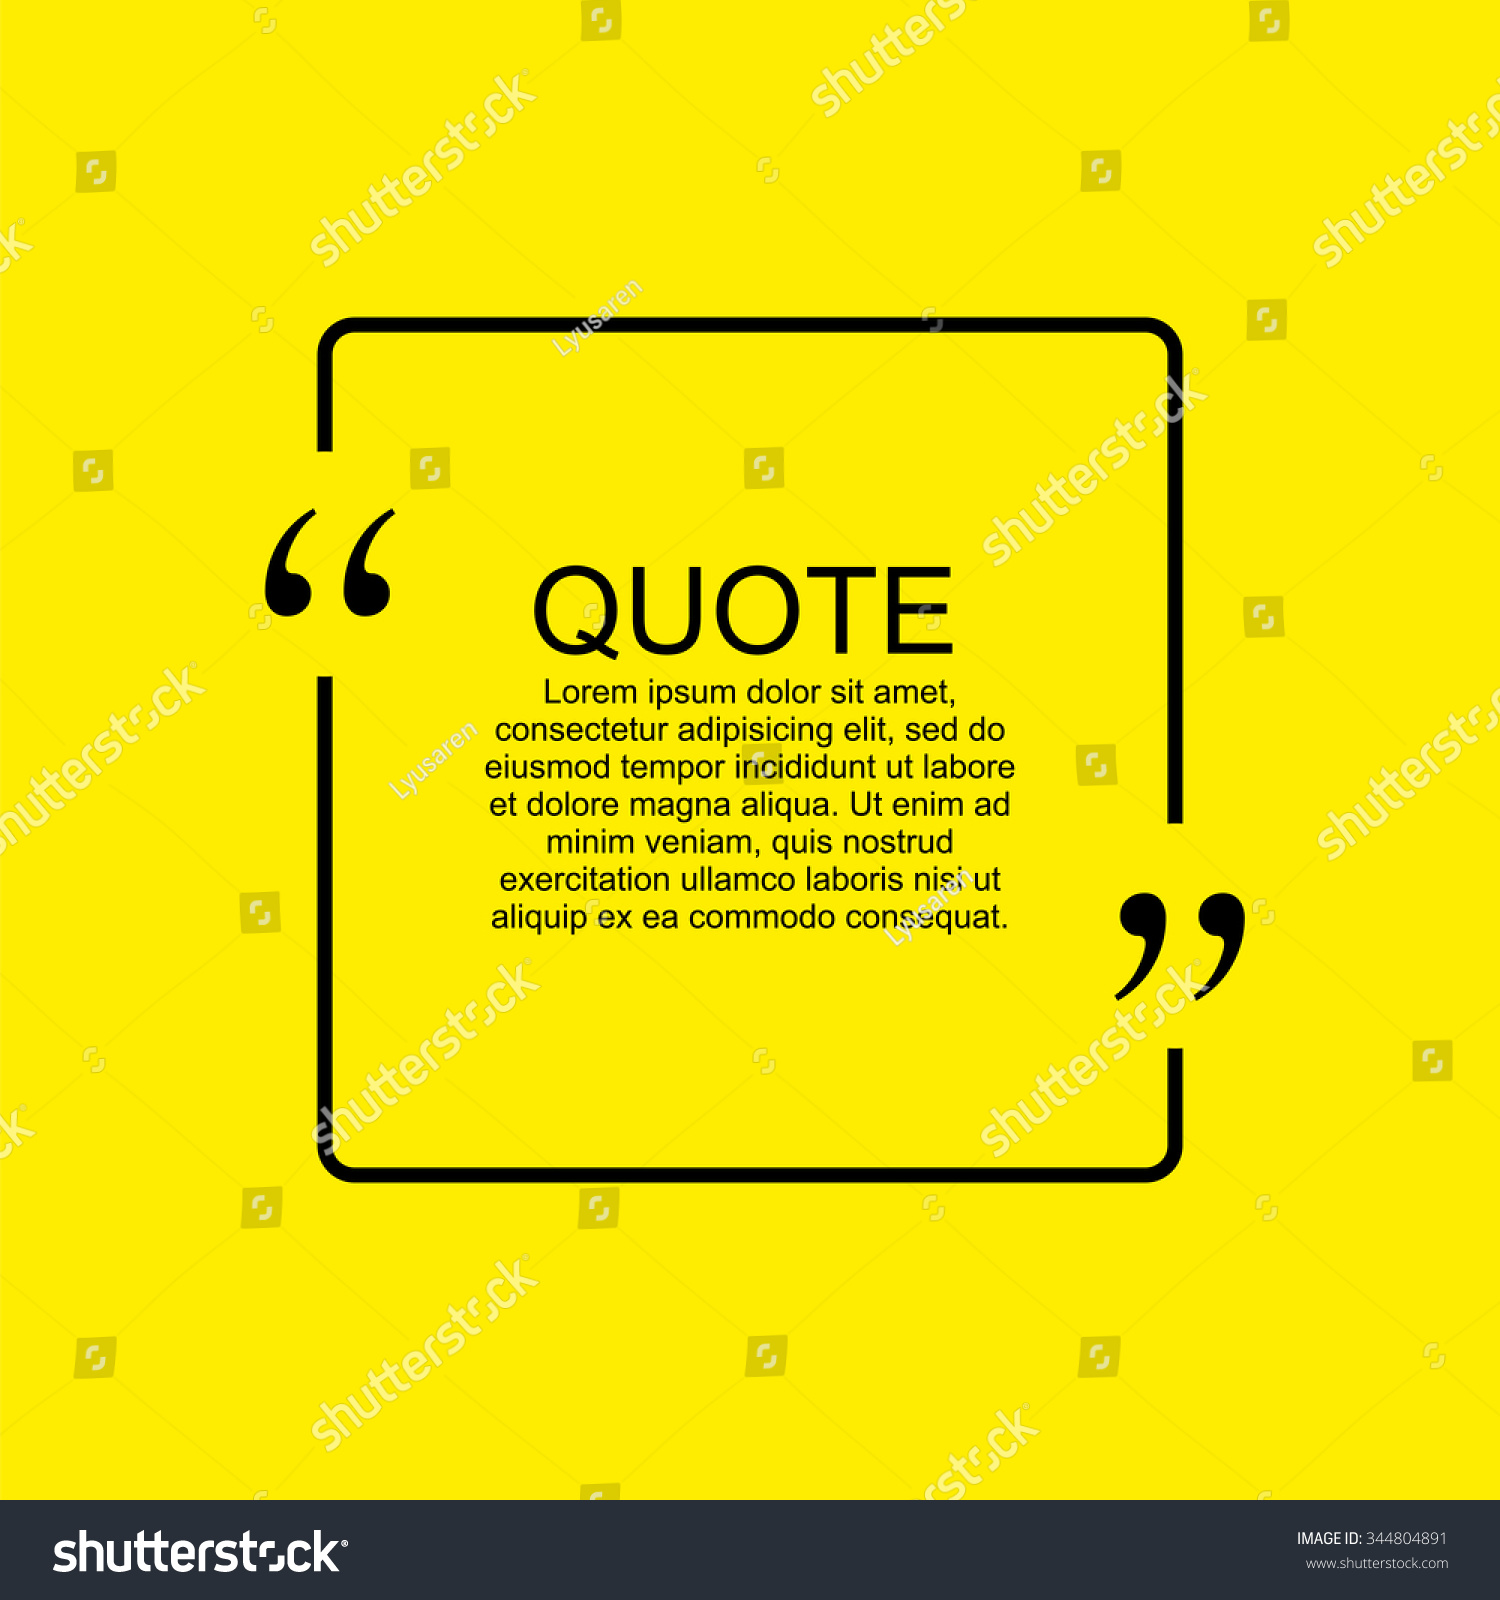 quote blank template quote bubble empty stock vector 344804891 quote blank template quote bubble empty template square business card template paper